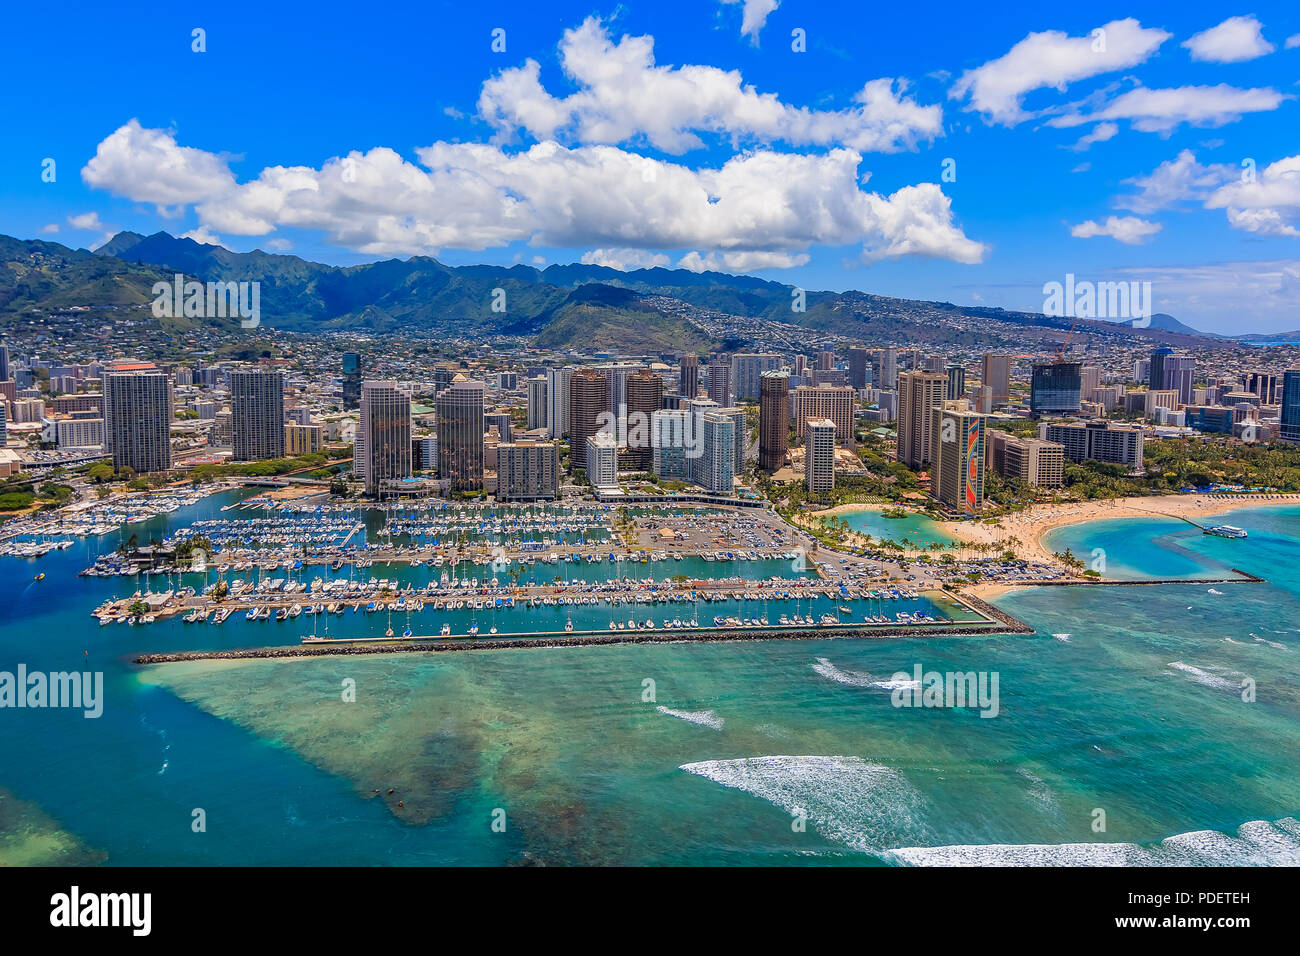 Aerial view of Waikiki Beach in Honolulu Hawaii from a helicopter - Stock Image